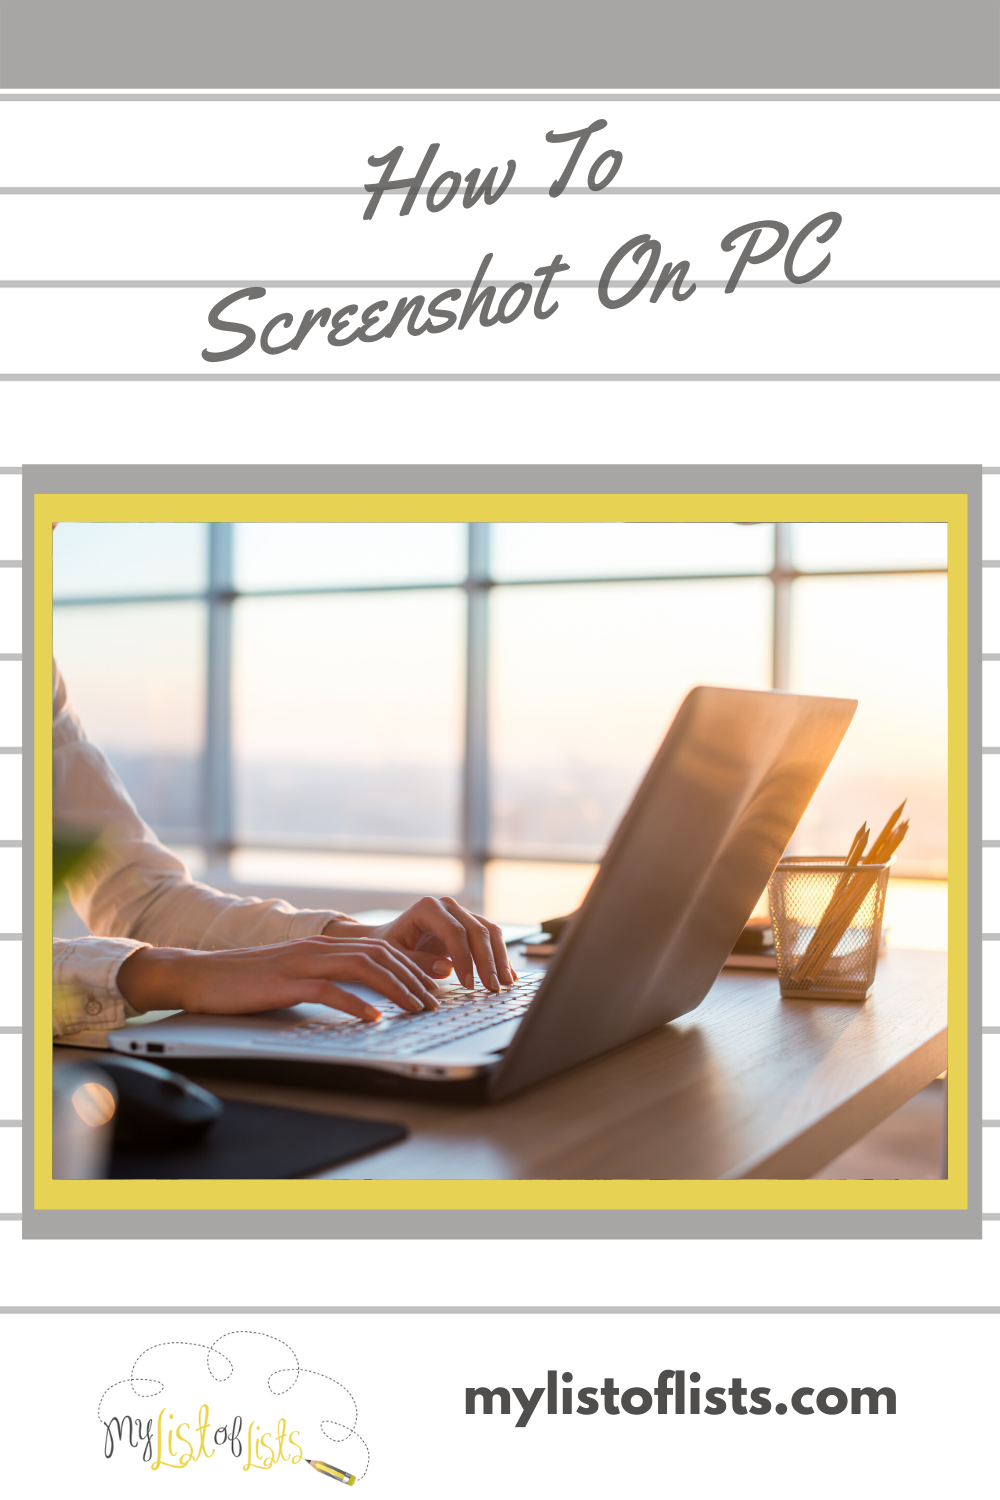 Need to take a screenshot on a PC but don't have a clue how to do it? No worries. My list of lists can help. Read the post to learn how. #pcscreenshot #tipsandtricks #mylistoflistsblog